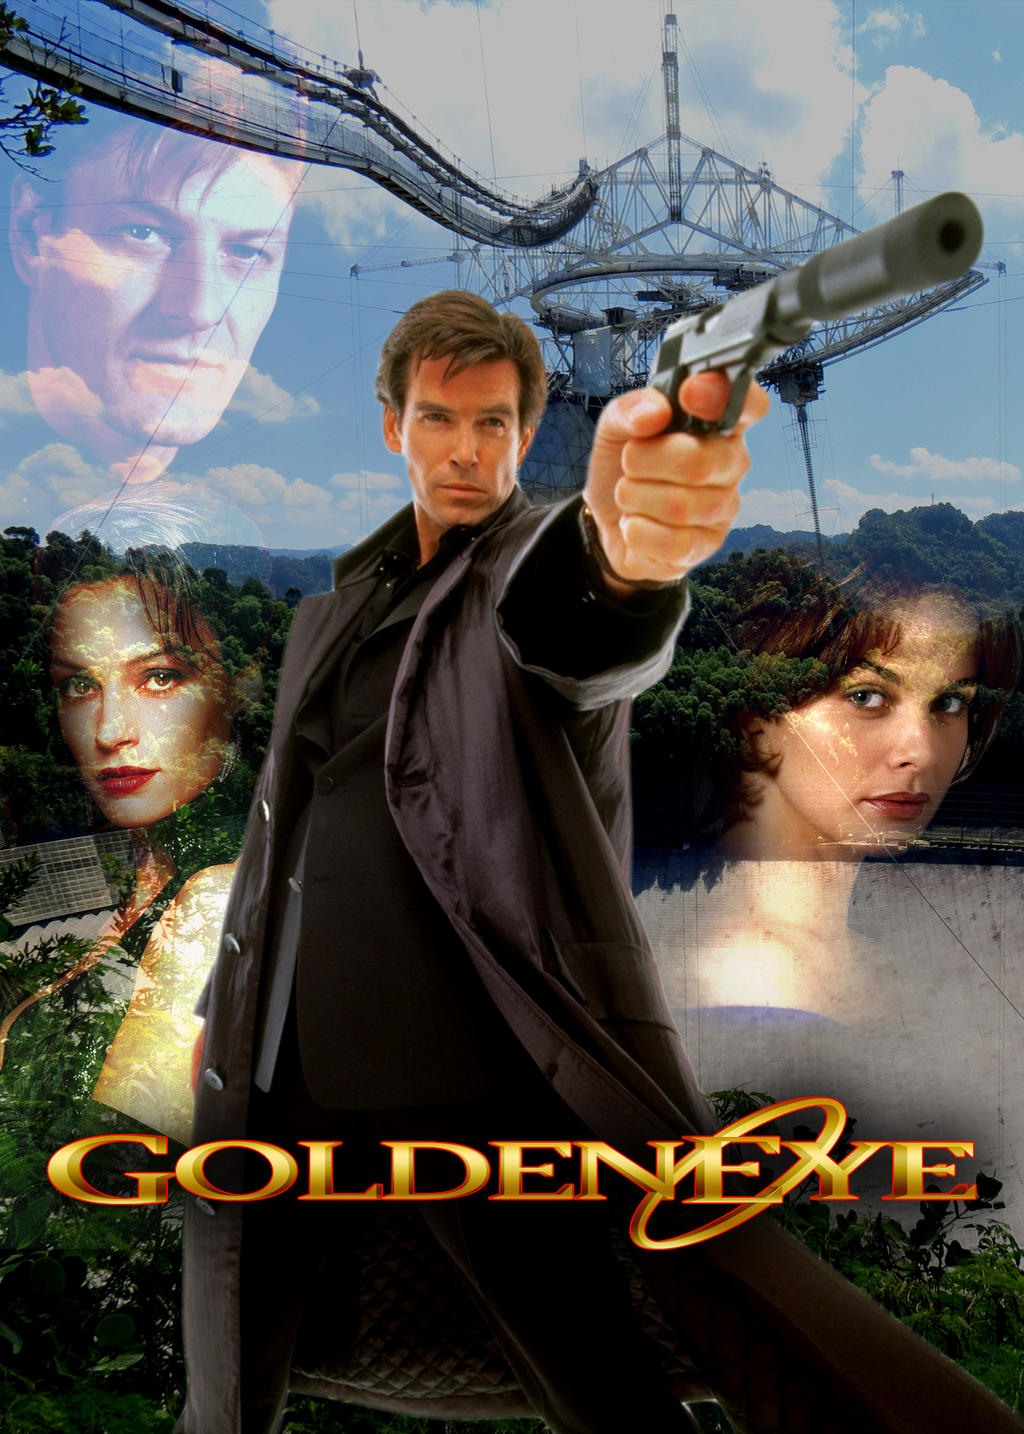 movies tv 2013 2015 comandercool22 poster for my favorite bond movieGoldeneye Movie Poster